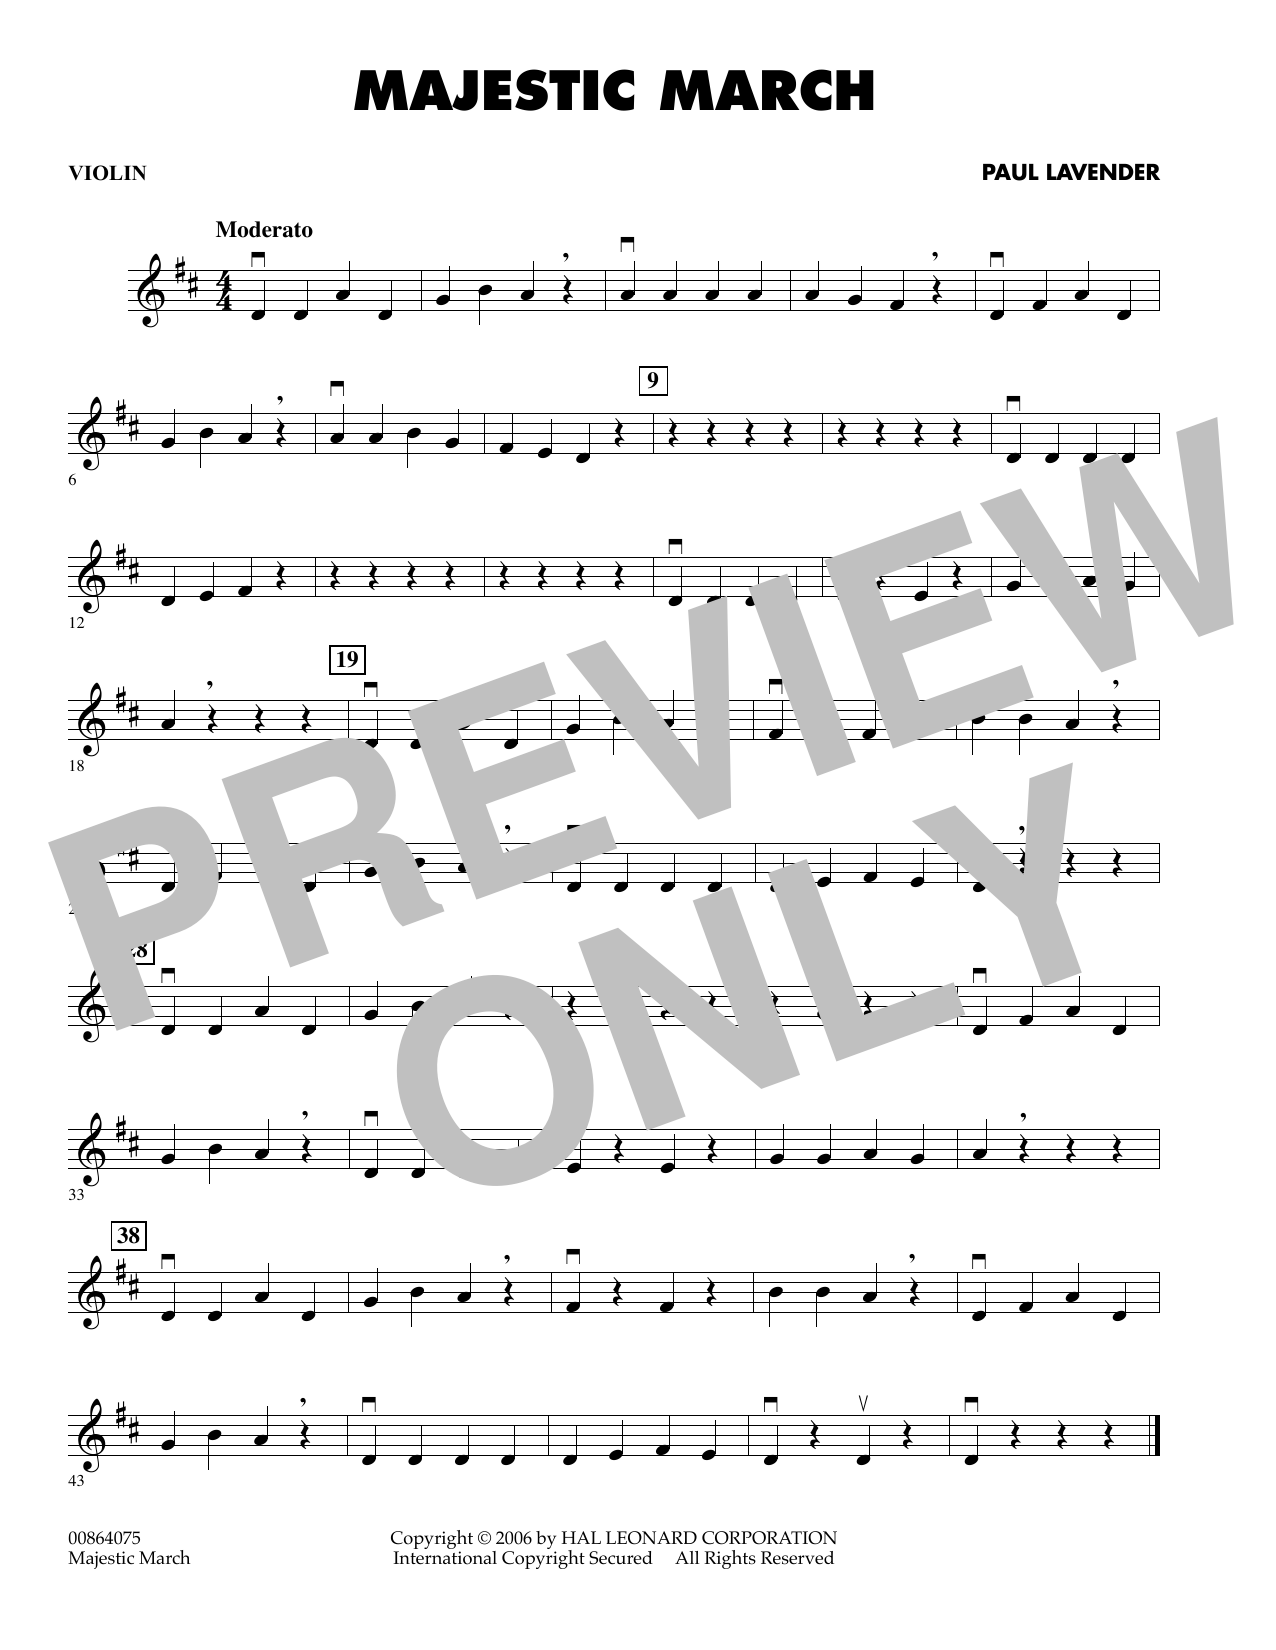 Paul Lavender Majestic March - Violin sheet music preview music notes and score for Orchestra including 1 page(s)